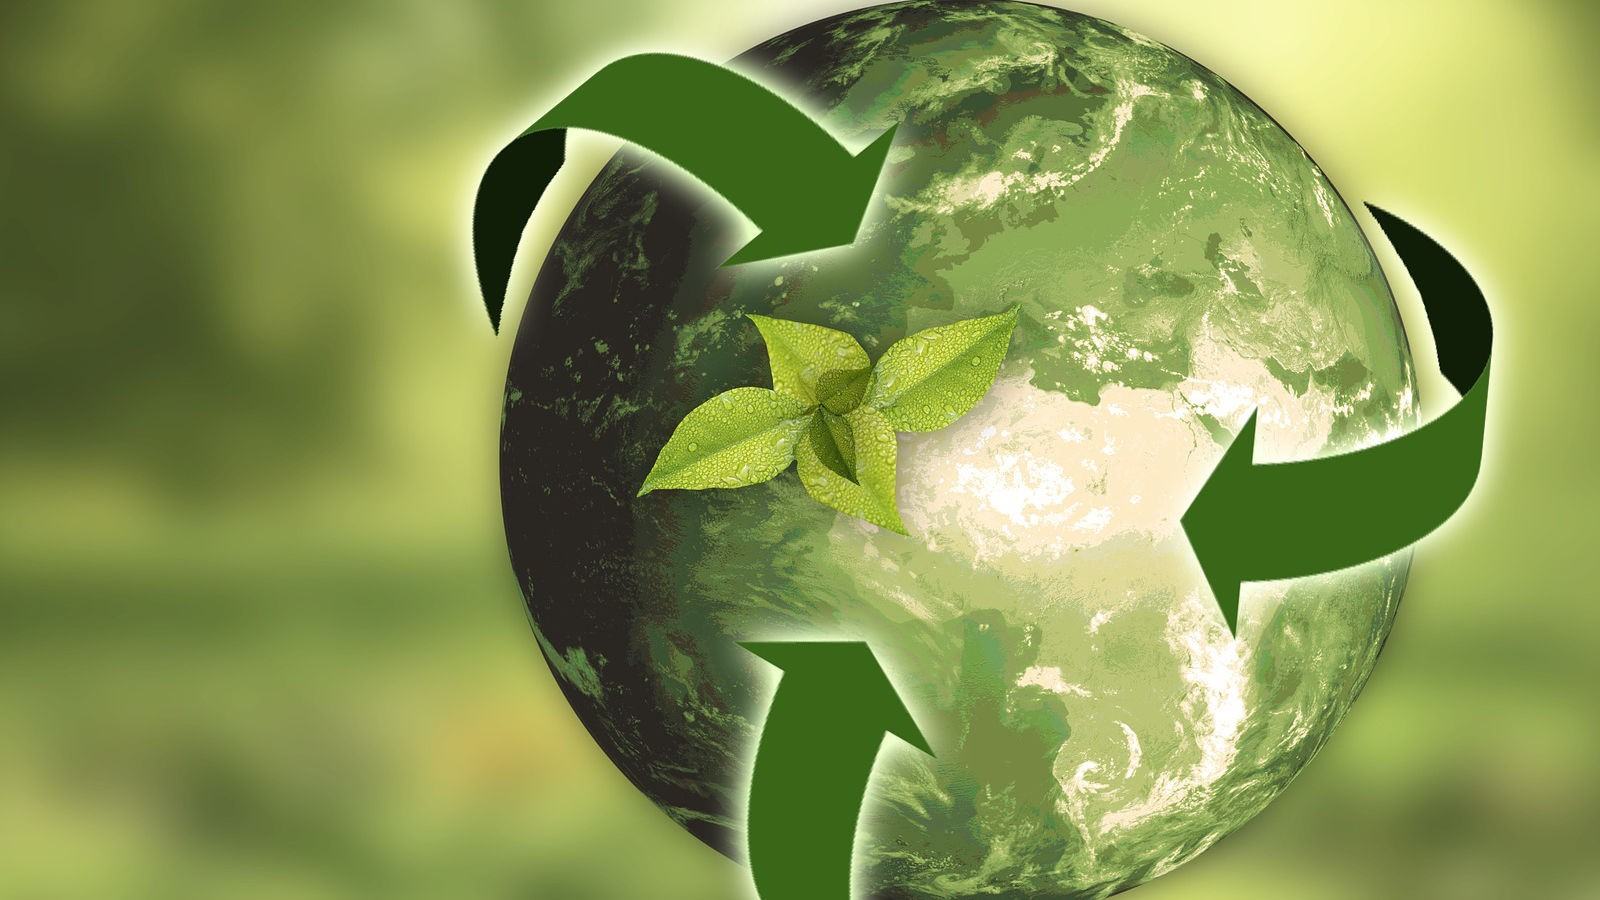 Green Earth - Reuse and Recycle!